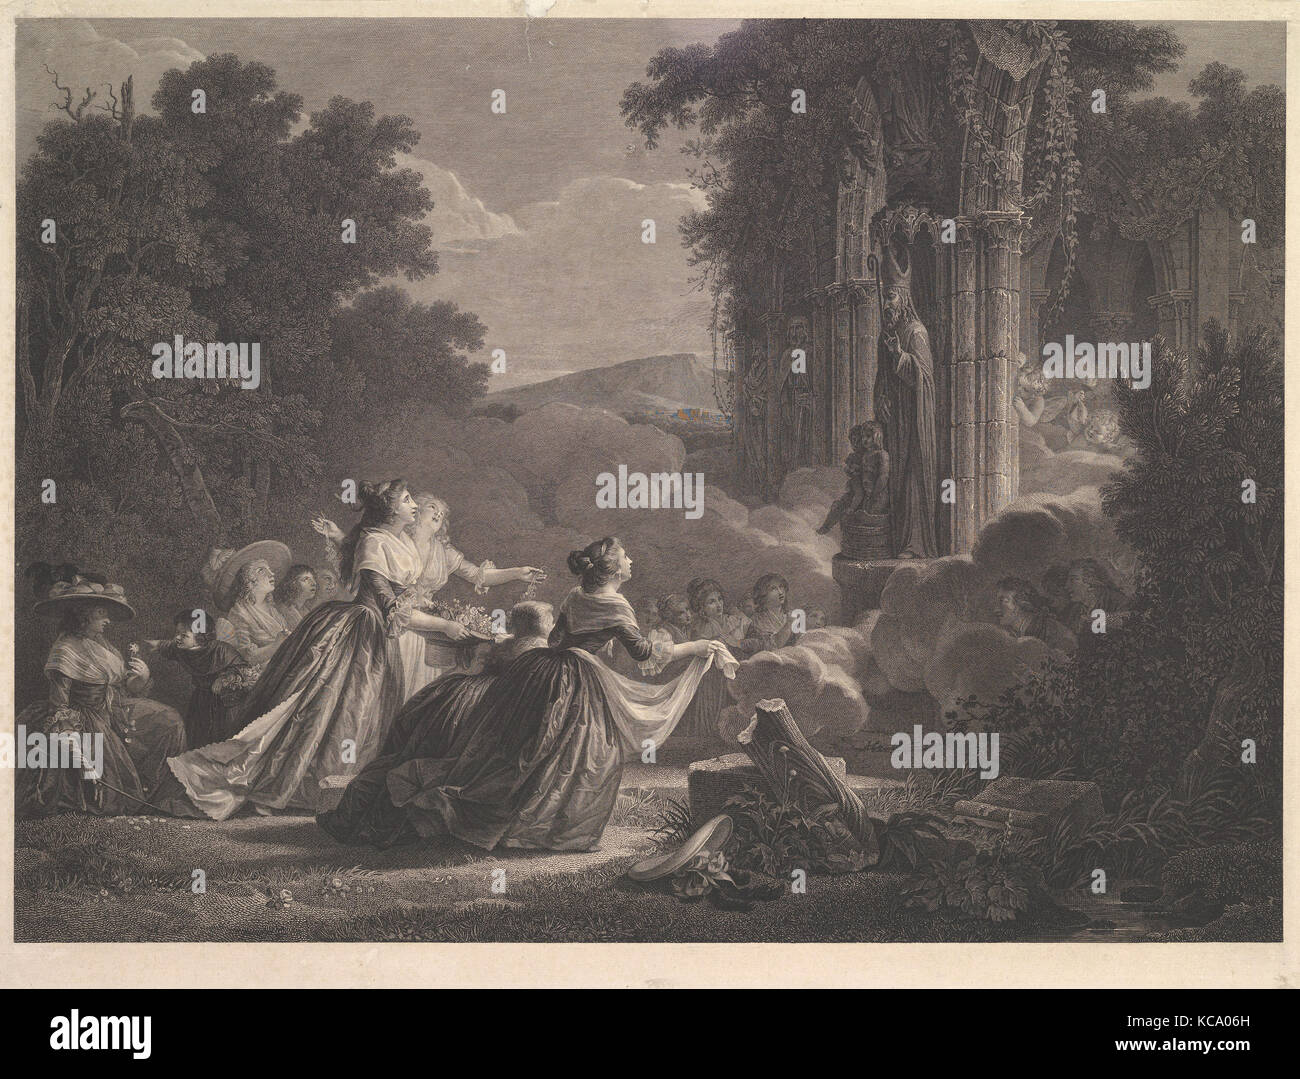 Pelerinage a Saint Nicolas, After Jean Honoré Fragonard, n.d - Stock Image